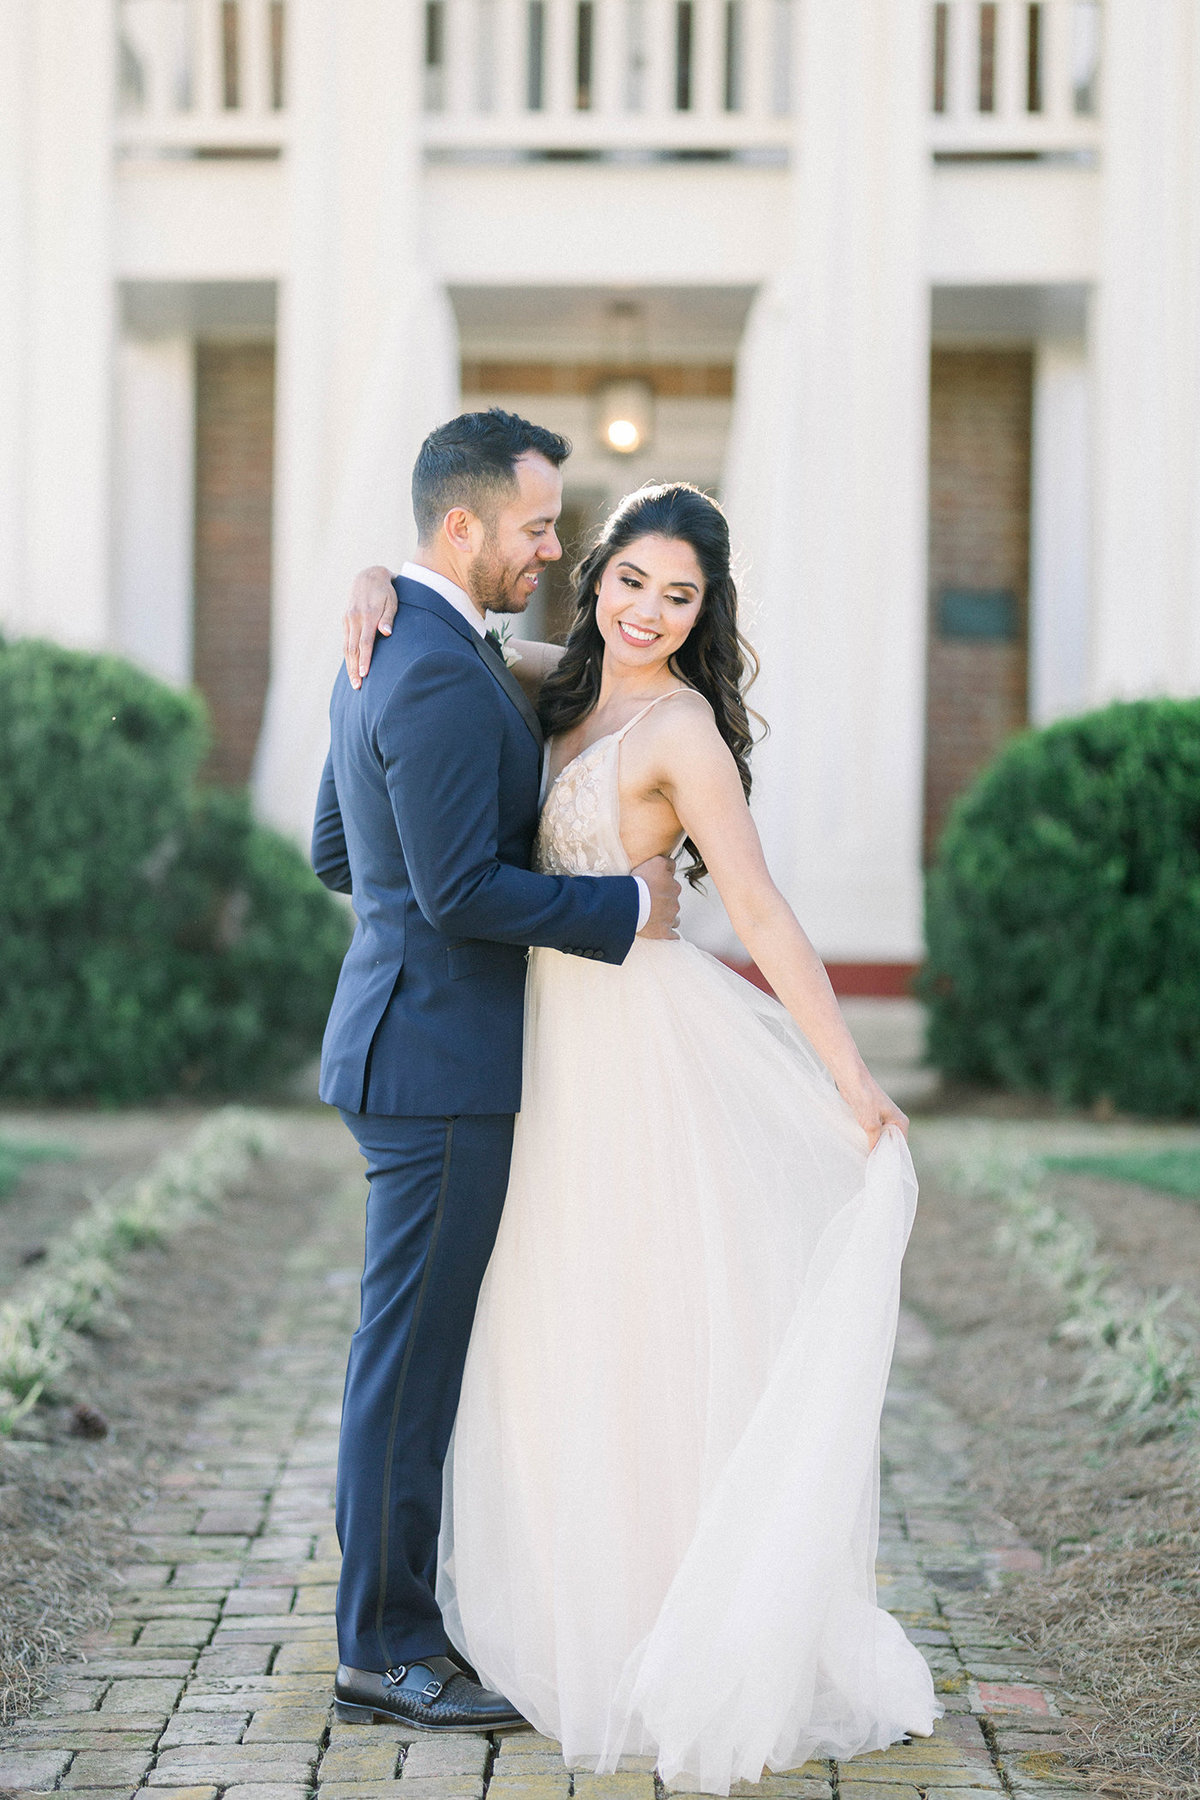 Cedarmont Nashville Editorial - Sarah Sunstrom Photography - Fine Art Wedding Photographer - 22